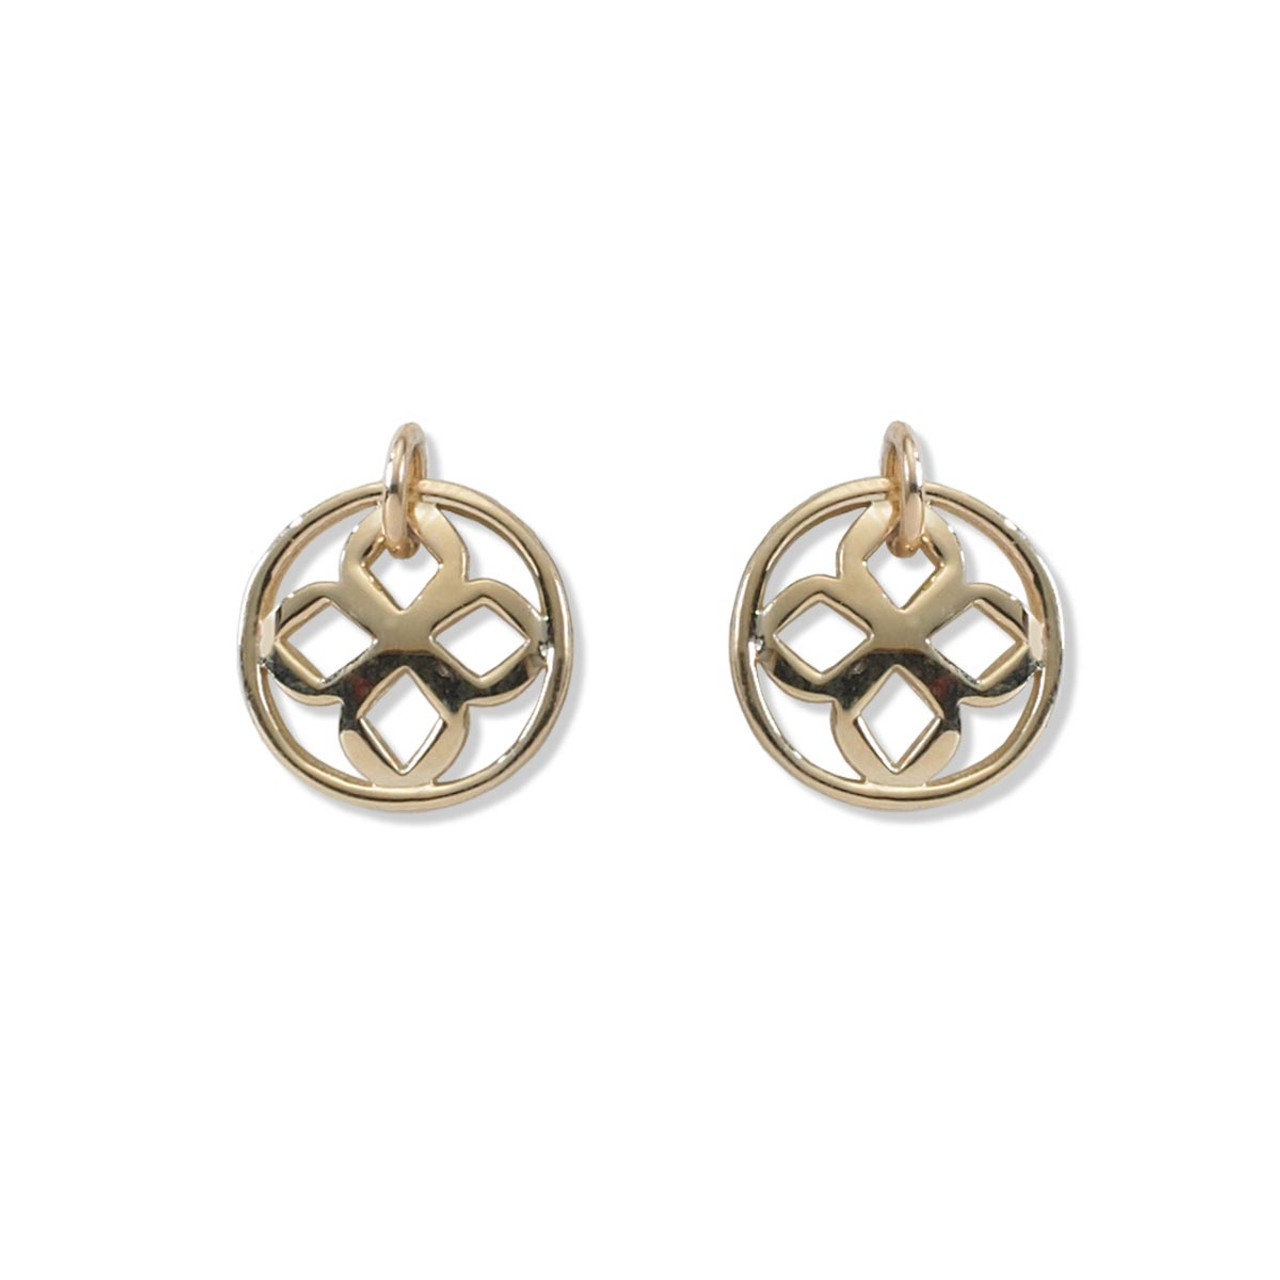 amp gold silver image earrings circular fiorelli plated circle cutout drop